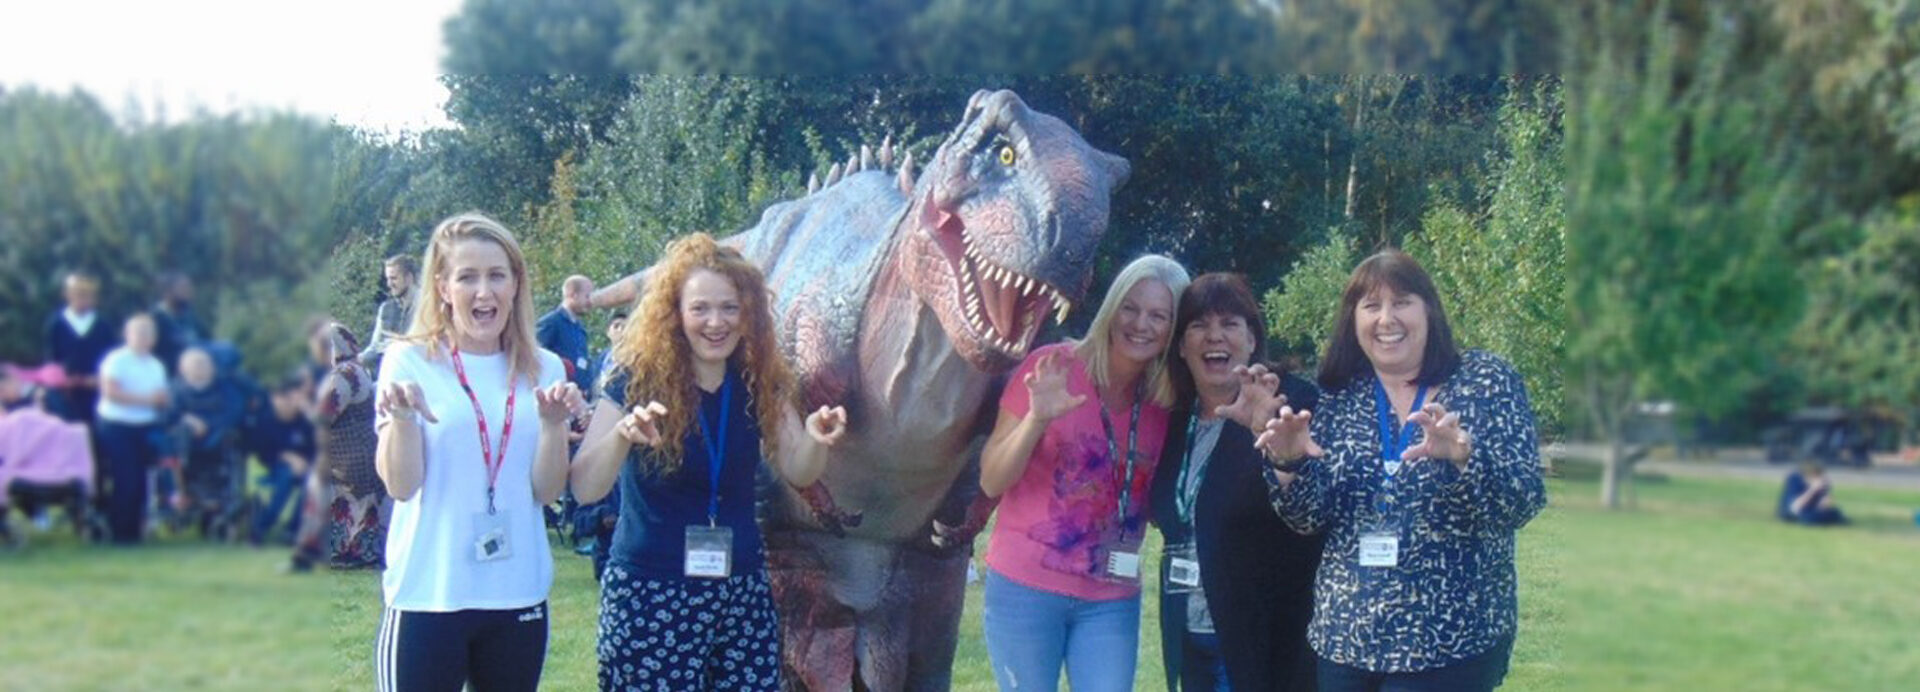 Wilson Stuart's Parents For Parents Association Fund Amazing Dinosaur and Fossil Workshop Day for Students!